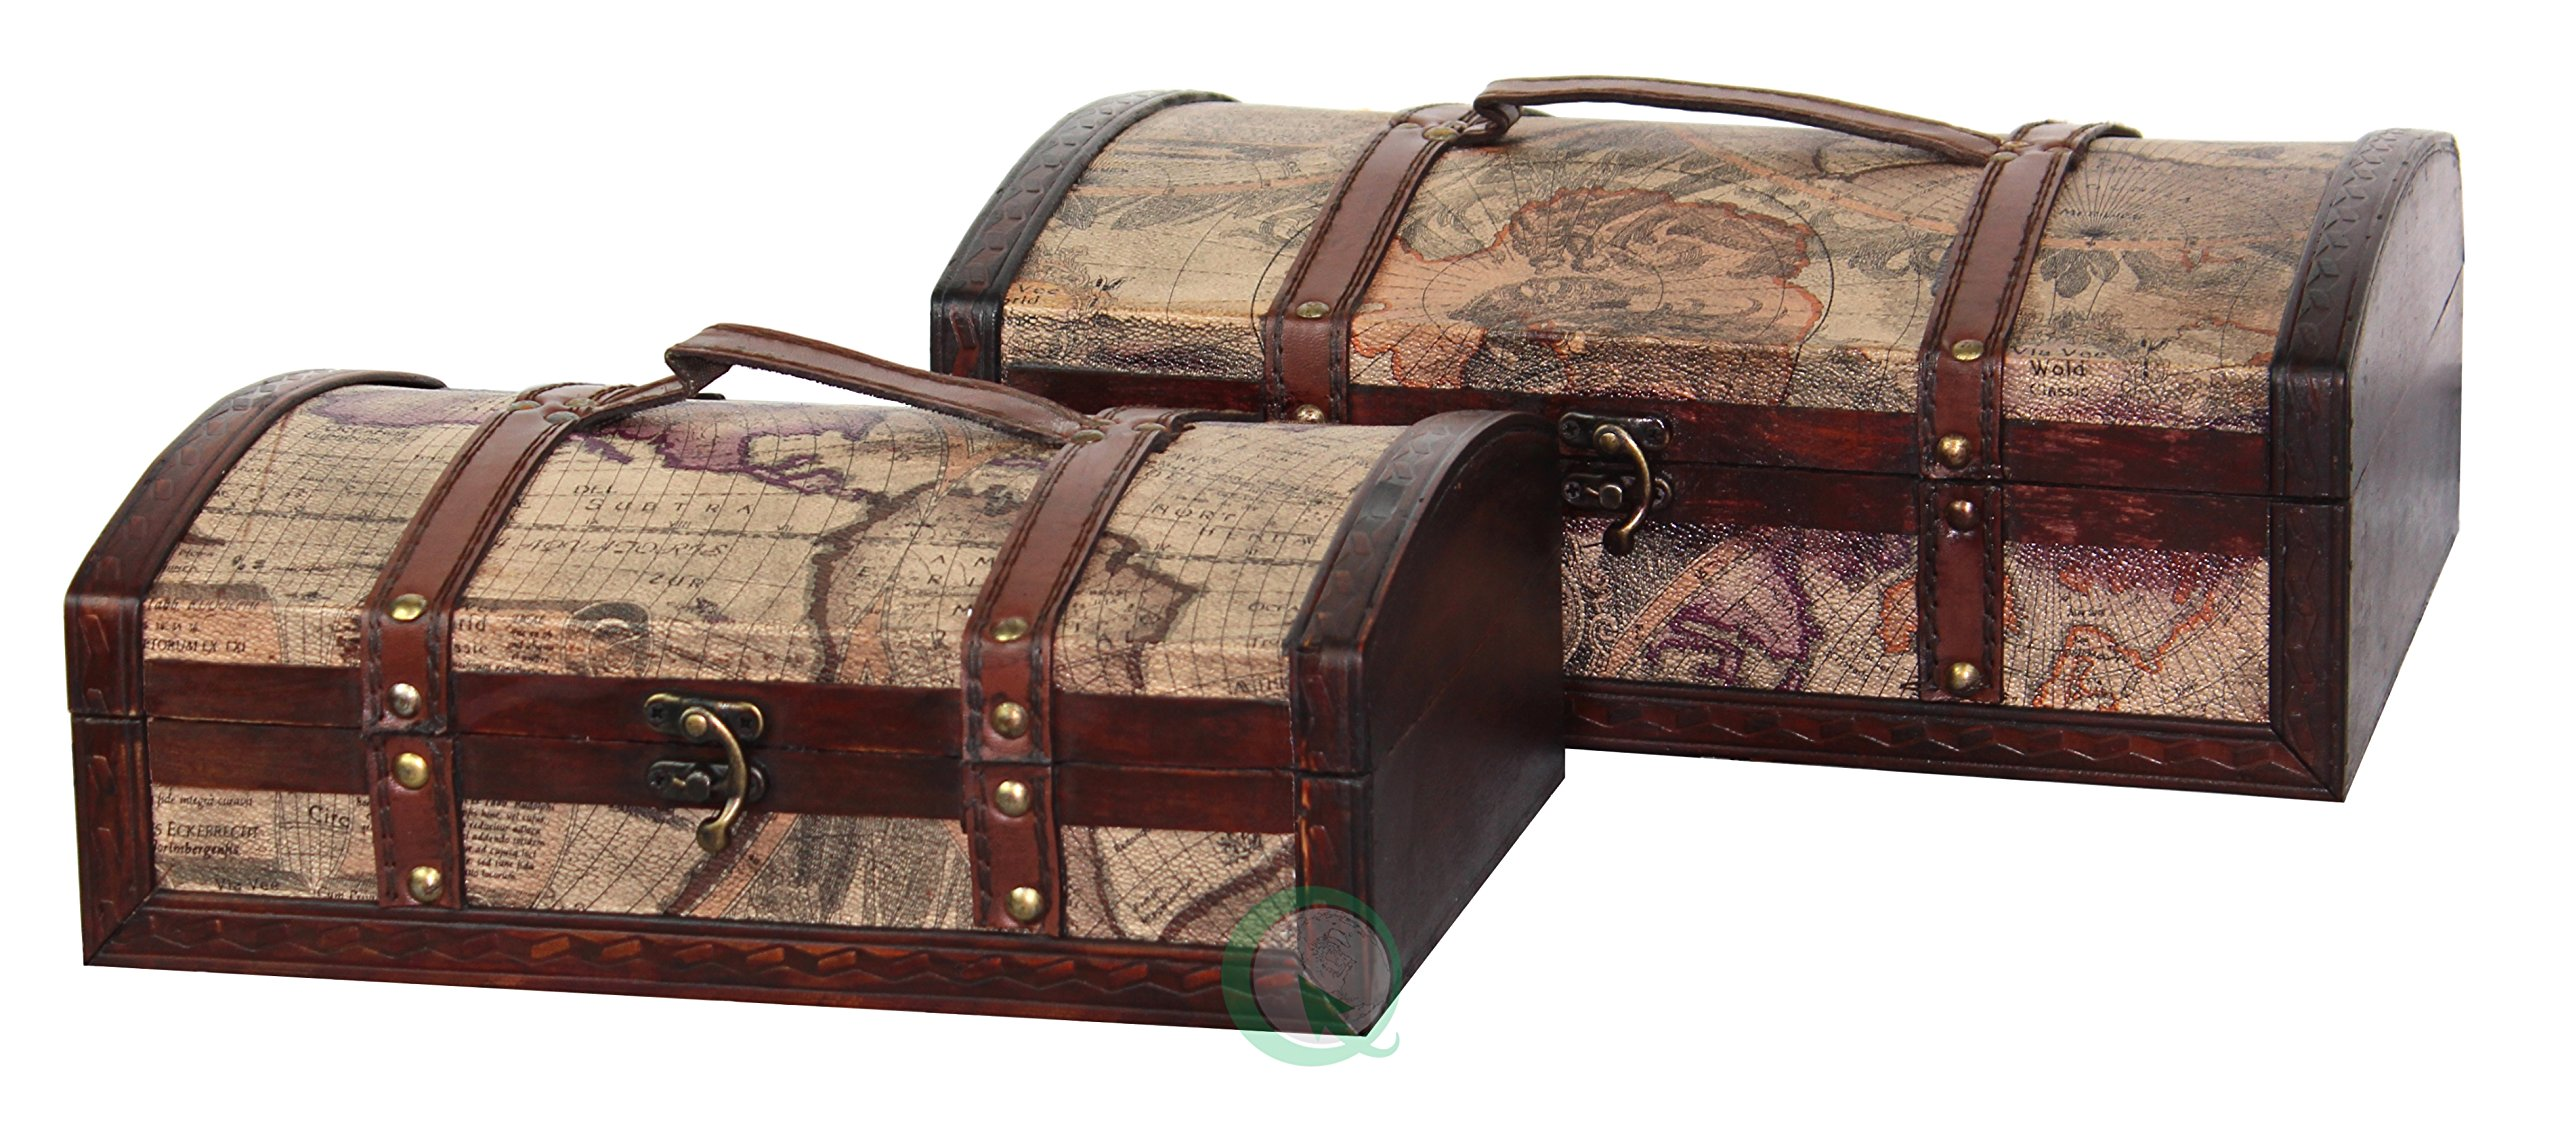 Vintiquewise TM Old World Map Treasure Chest/Decorative Box, Set of 2